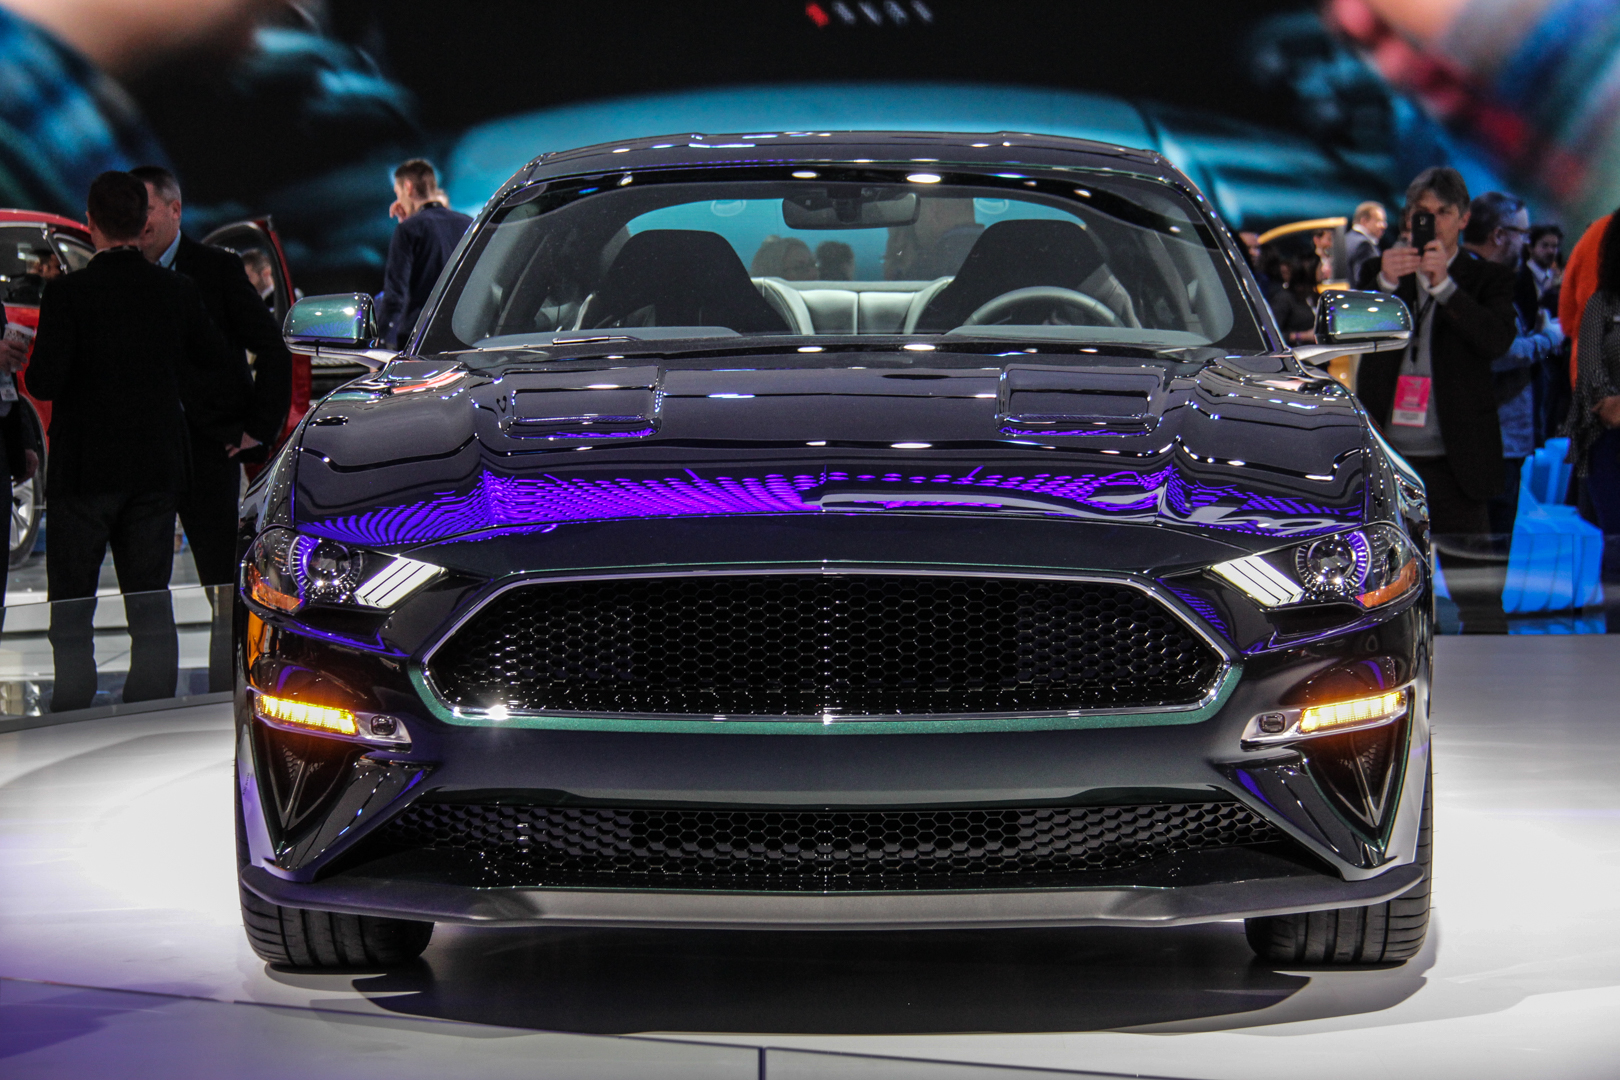 2018 detroit auto show ford mustang bullitt. Black Bedroom Furniture Sets. Home Design Ideas